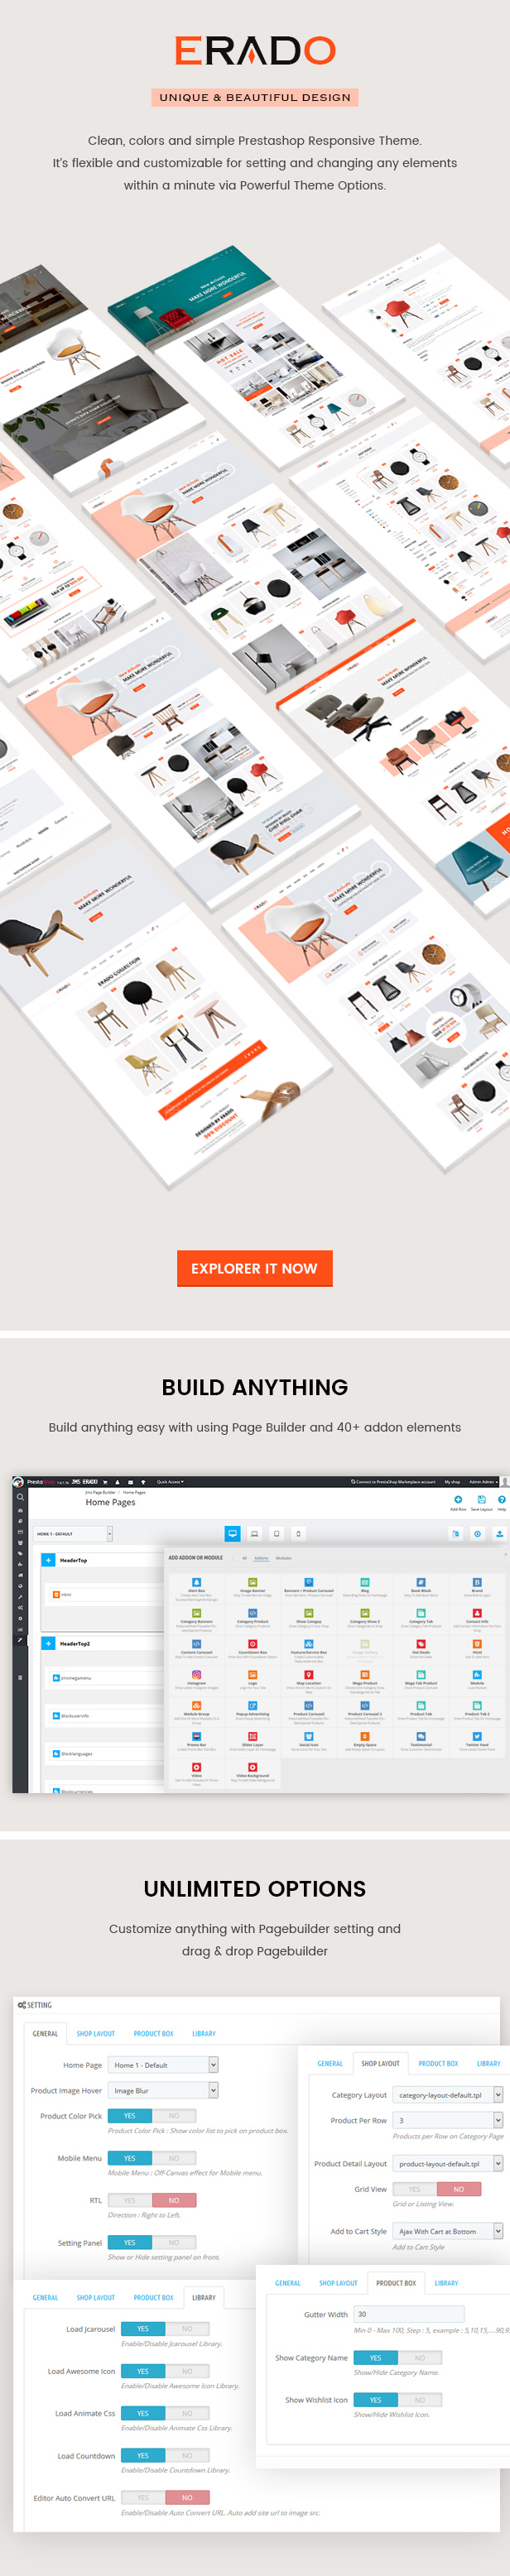 Erado Prestashop Theme erado - unique design responsive prestashop theme (prestashop) Erado – Unique Design Responsive Prestashop Theme (PrestaShop) full1